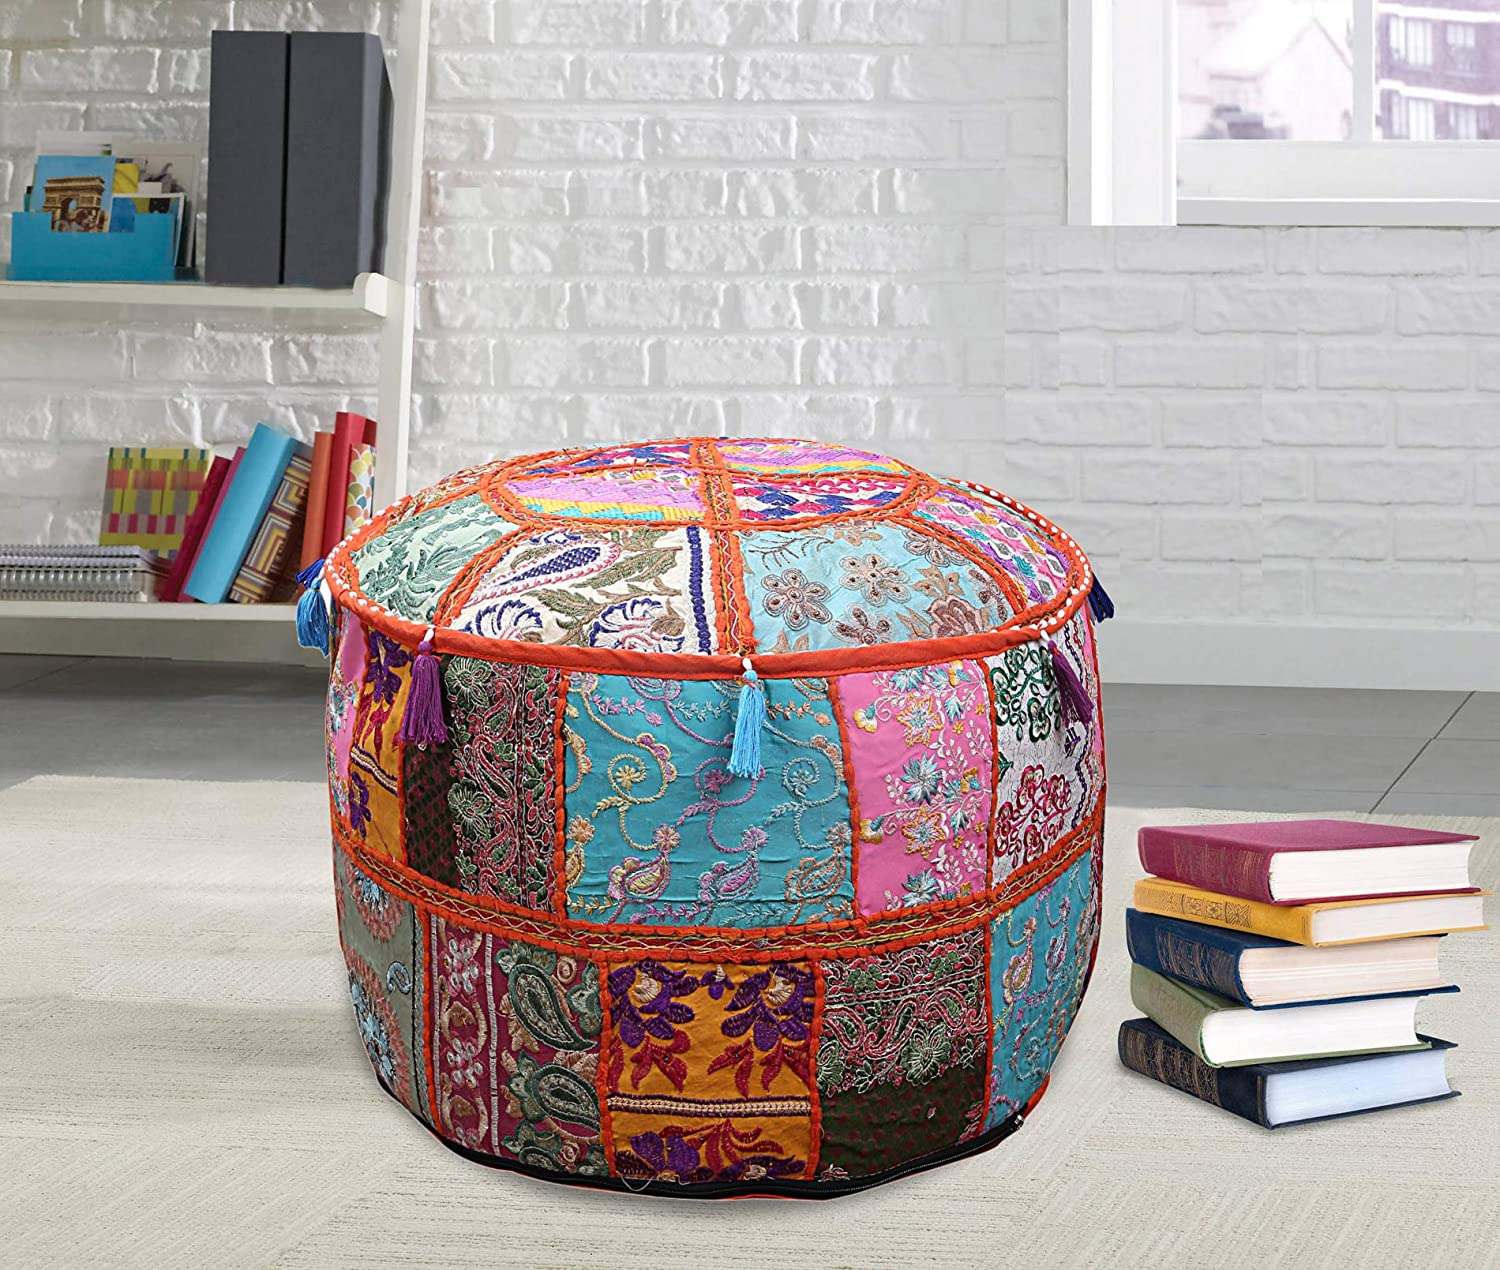 Janki Creation Patchwork Round Ottomans Cover Indian Handmade Footstools Throw Bedroom Decorative Embroidery Patchwork Ottomans Cover Decor